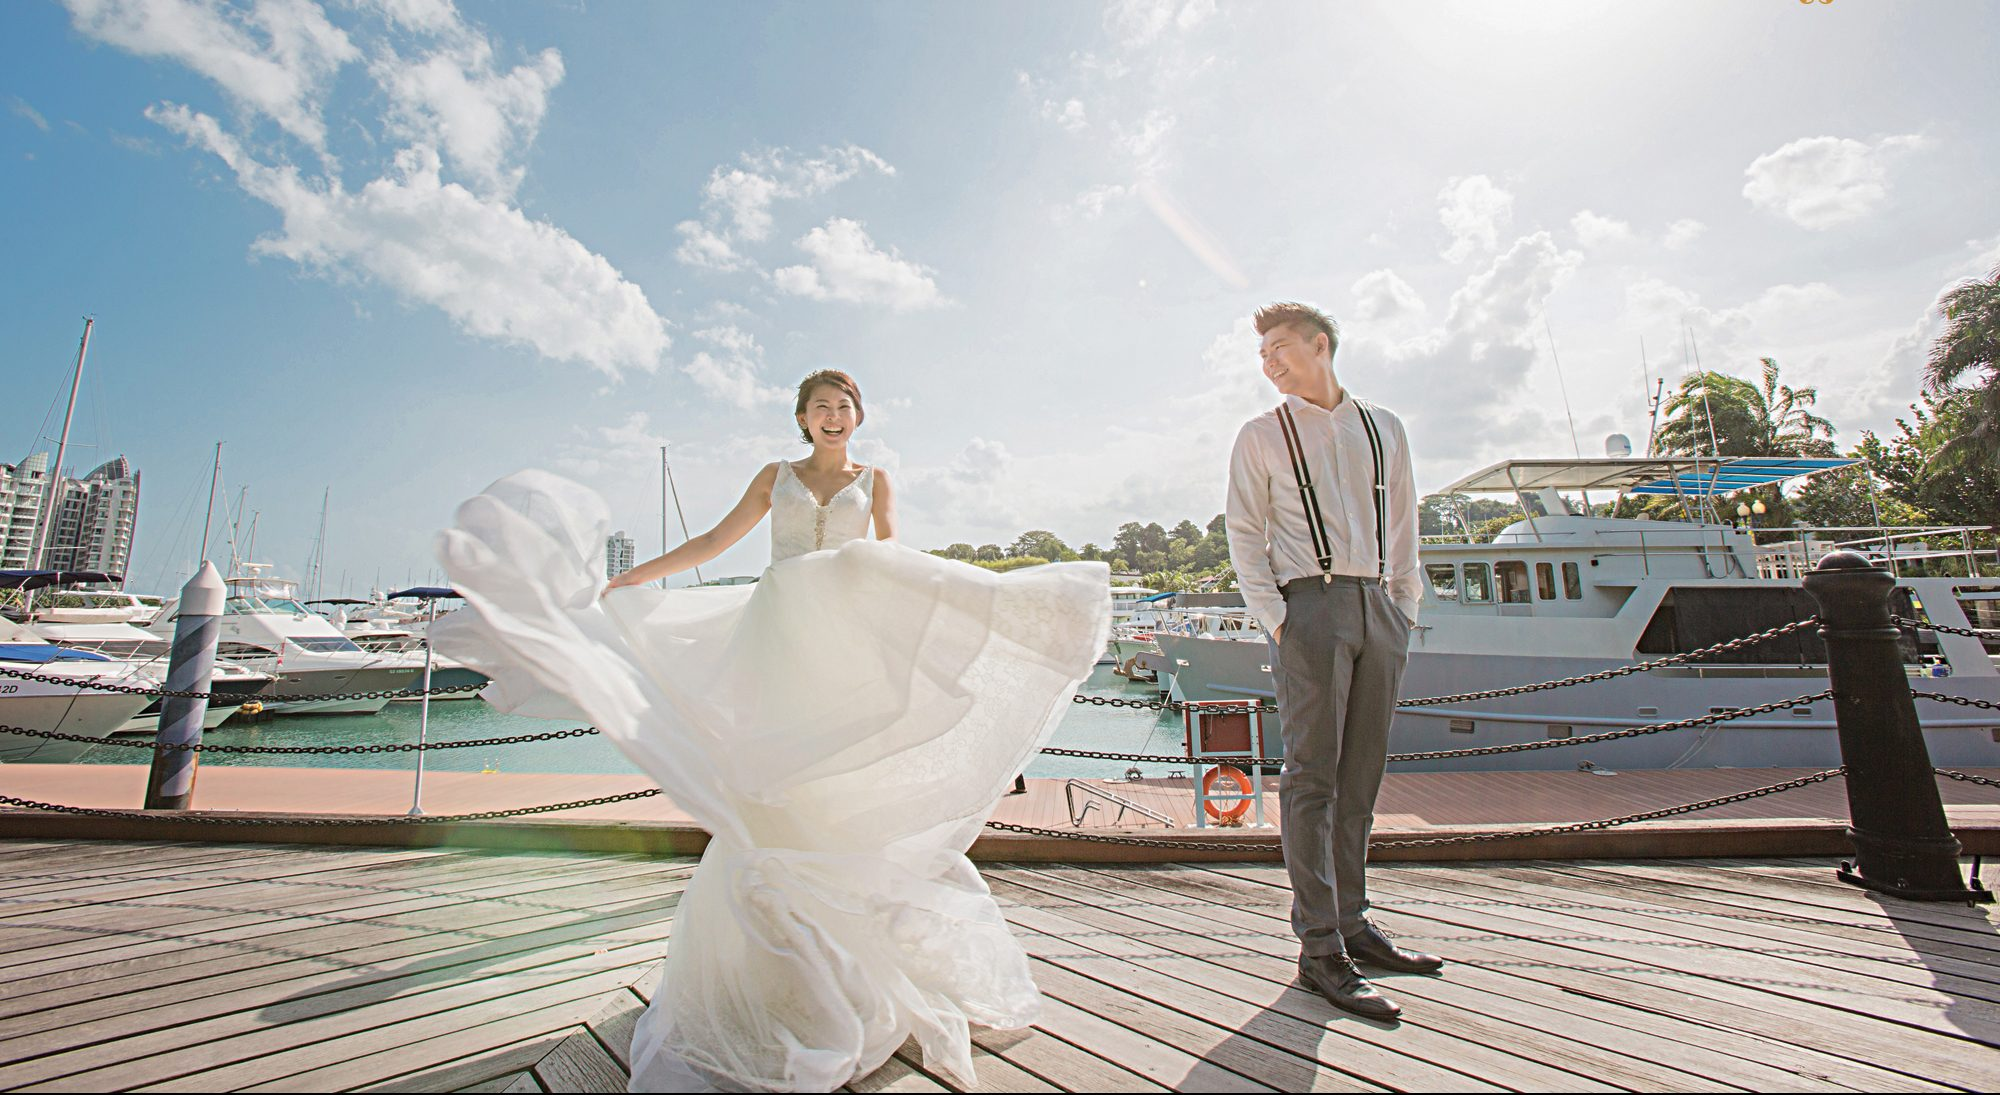 Best Non-traditional Wedding Venues in Singapore 2018